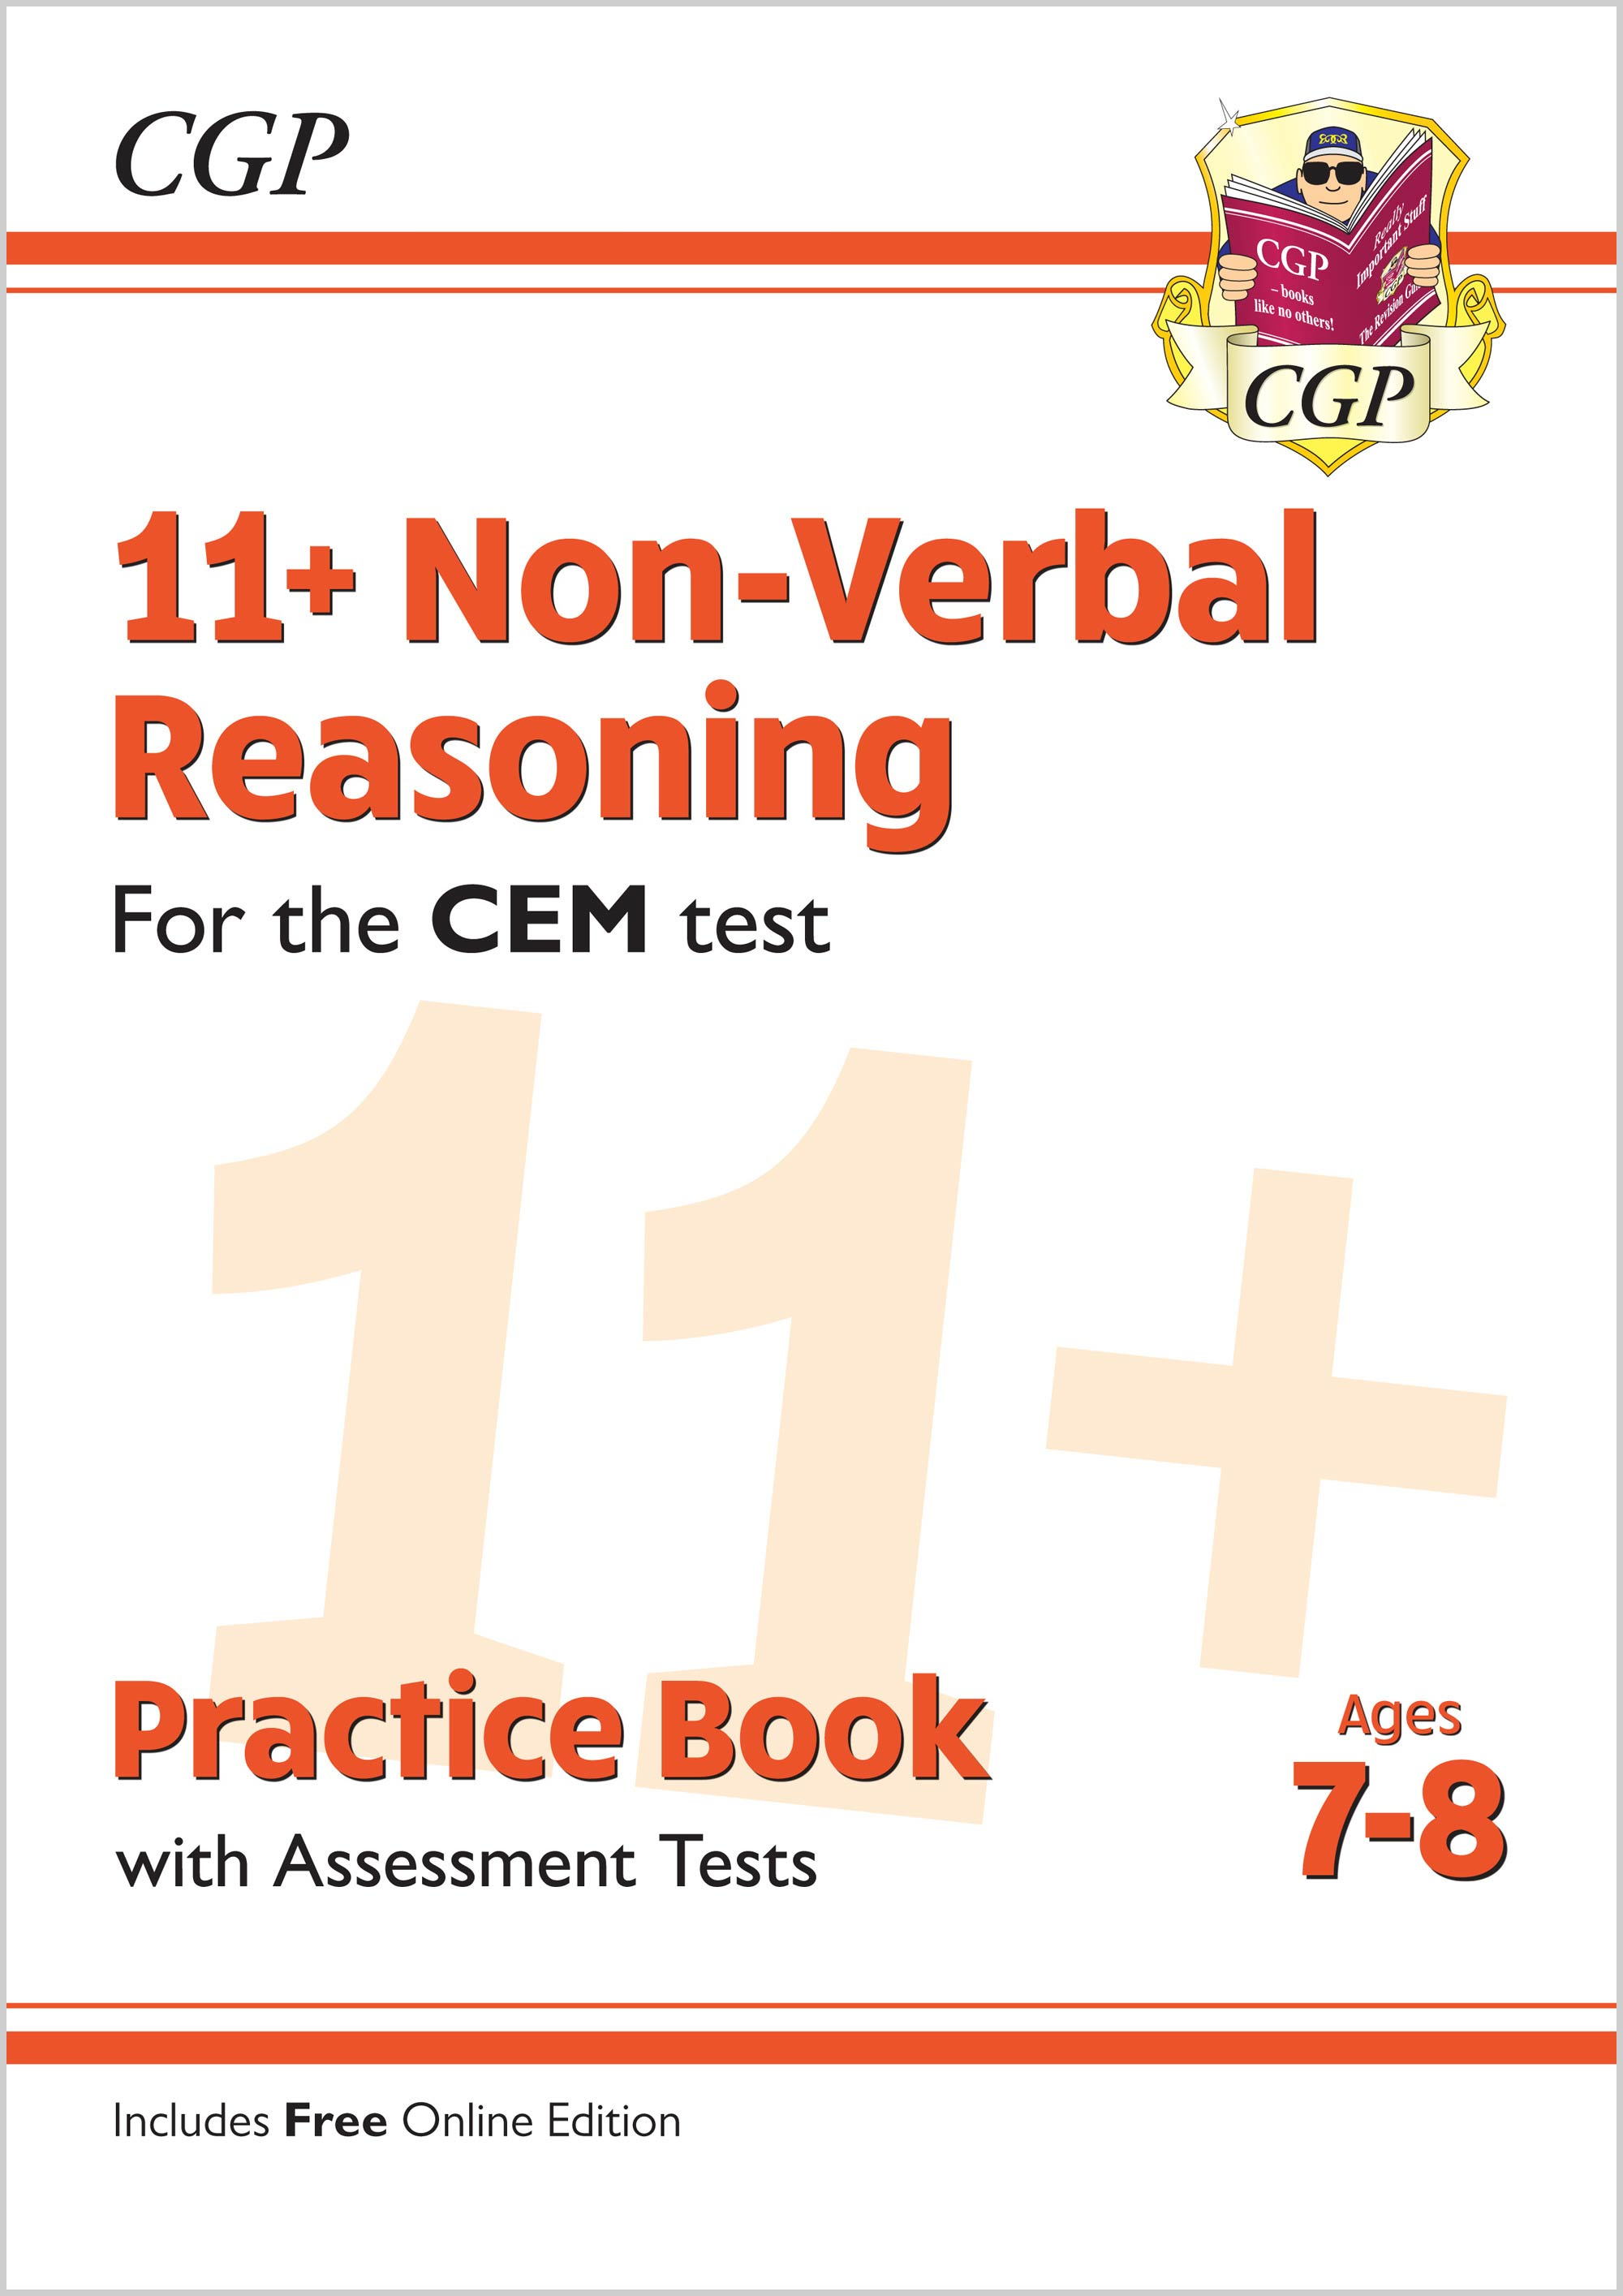 N3QDE2 - New 11+ CEM Non-Verbal Reasoning Practice Book & Assessment Tests - Ages 7-8 (with Online E